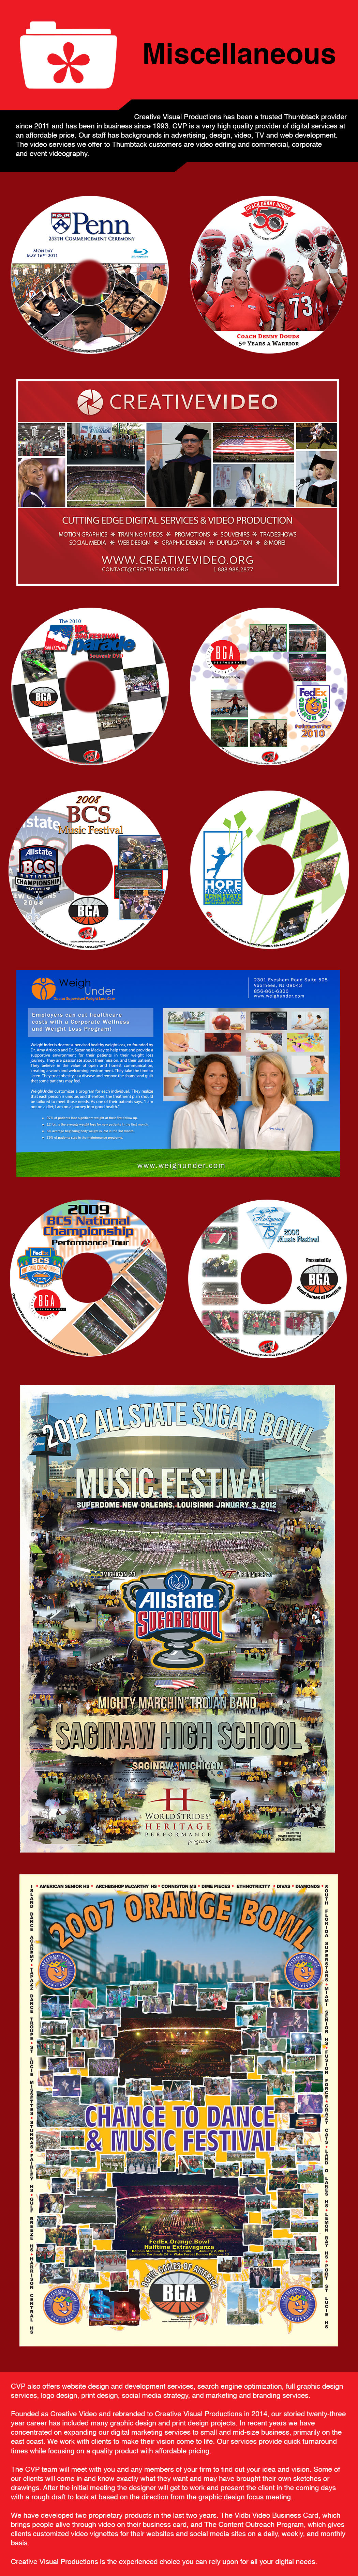 Misc services including poster creation, cd/dvd design and print materials